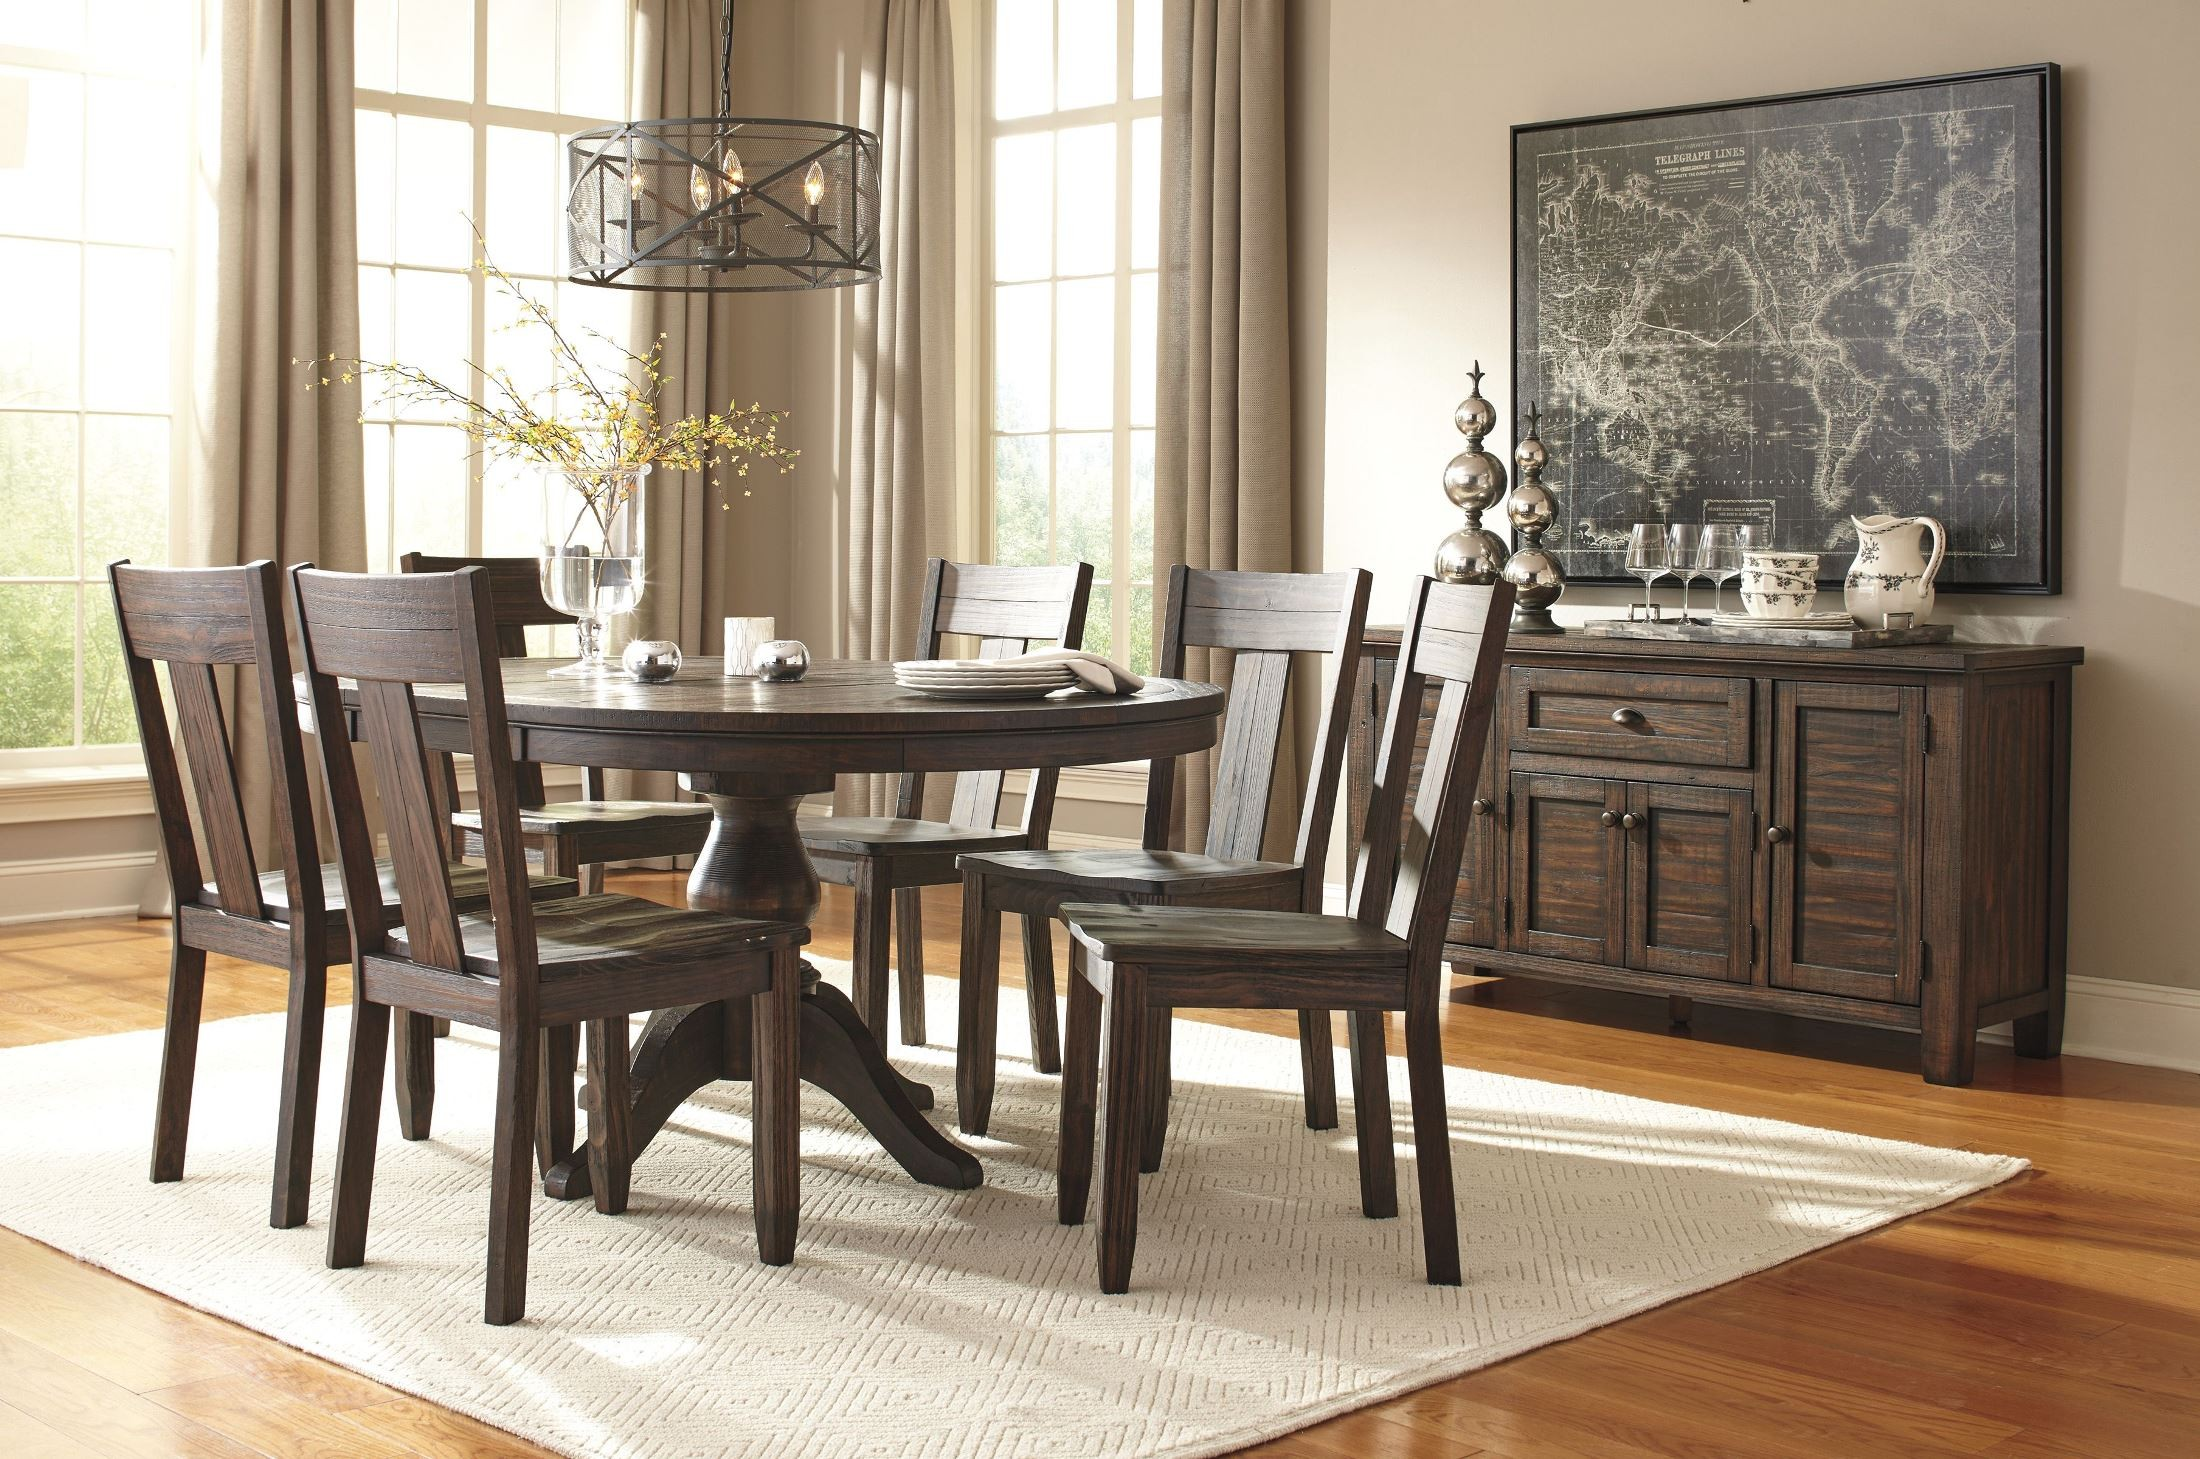 Trudell Dark Brown Round Extendable Pedestal Dining Table from